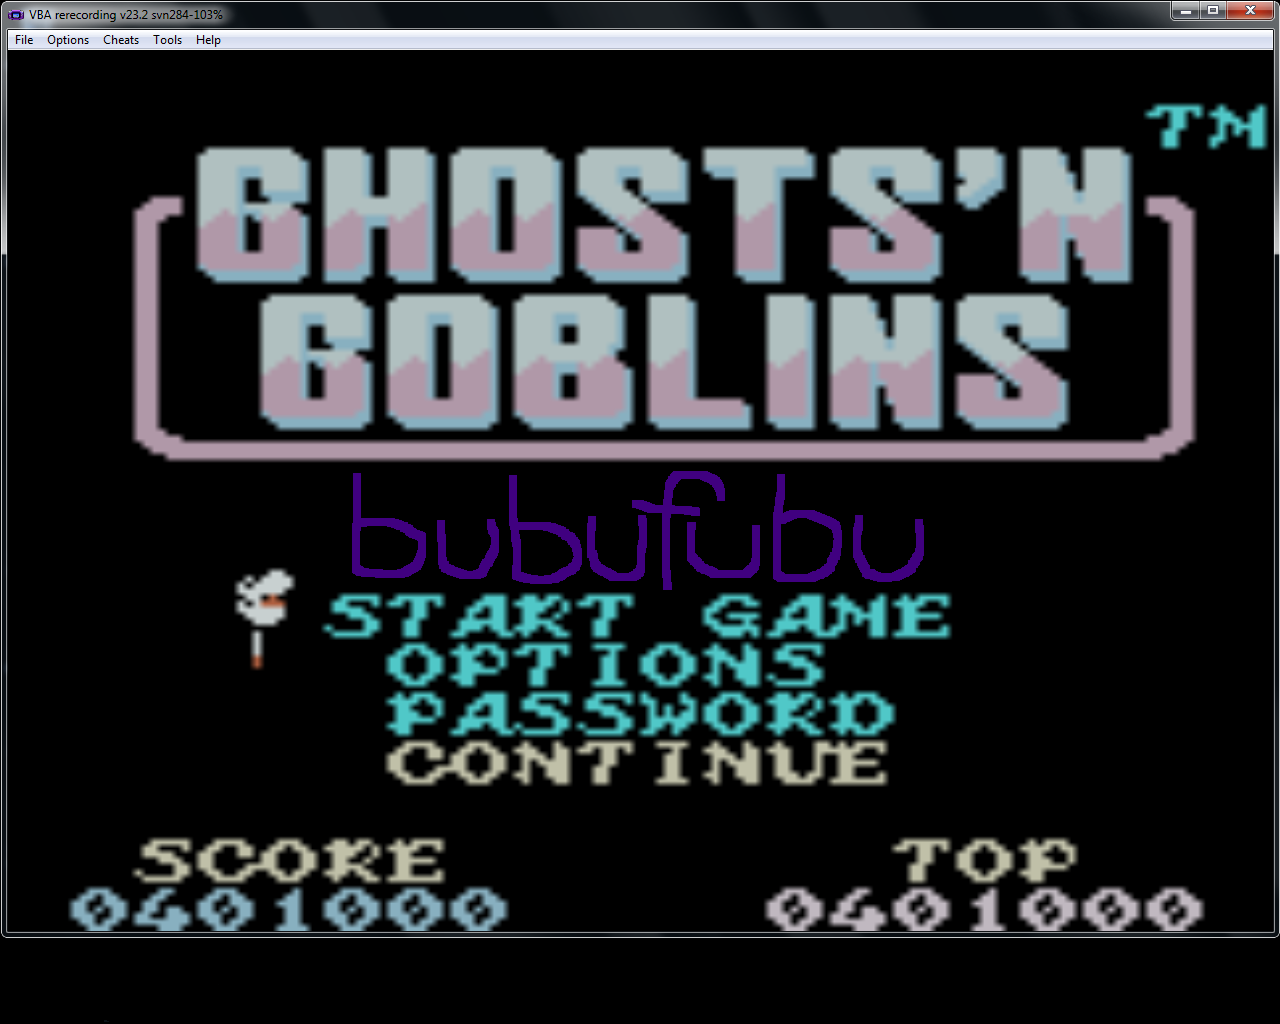 bubufubu: Ghosts N Goblins (Game Boy Color Emulated) 401,000 points on 2015-03-25 14:07:22